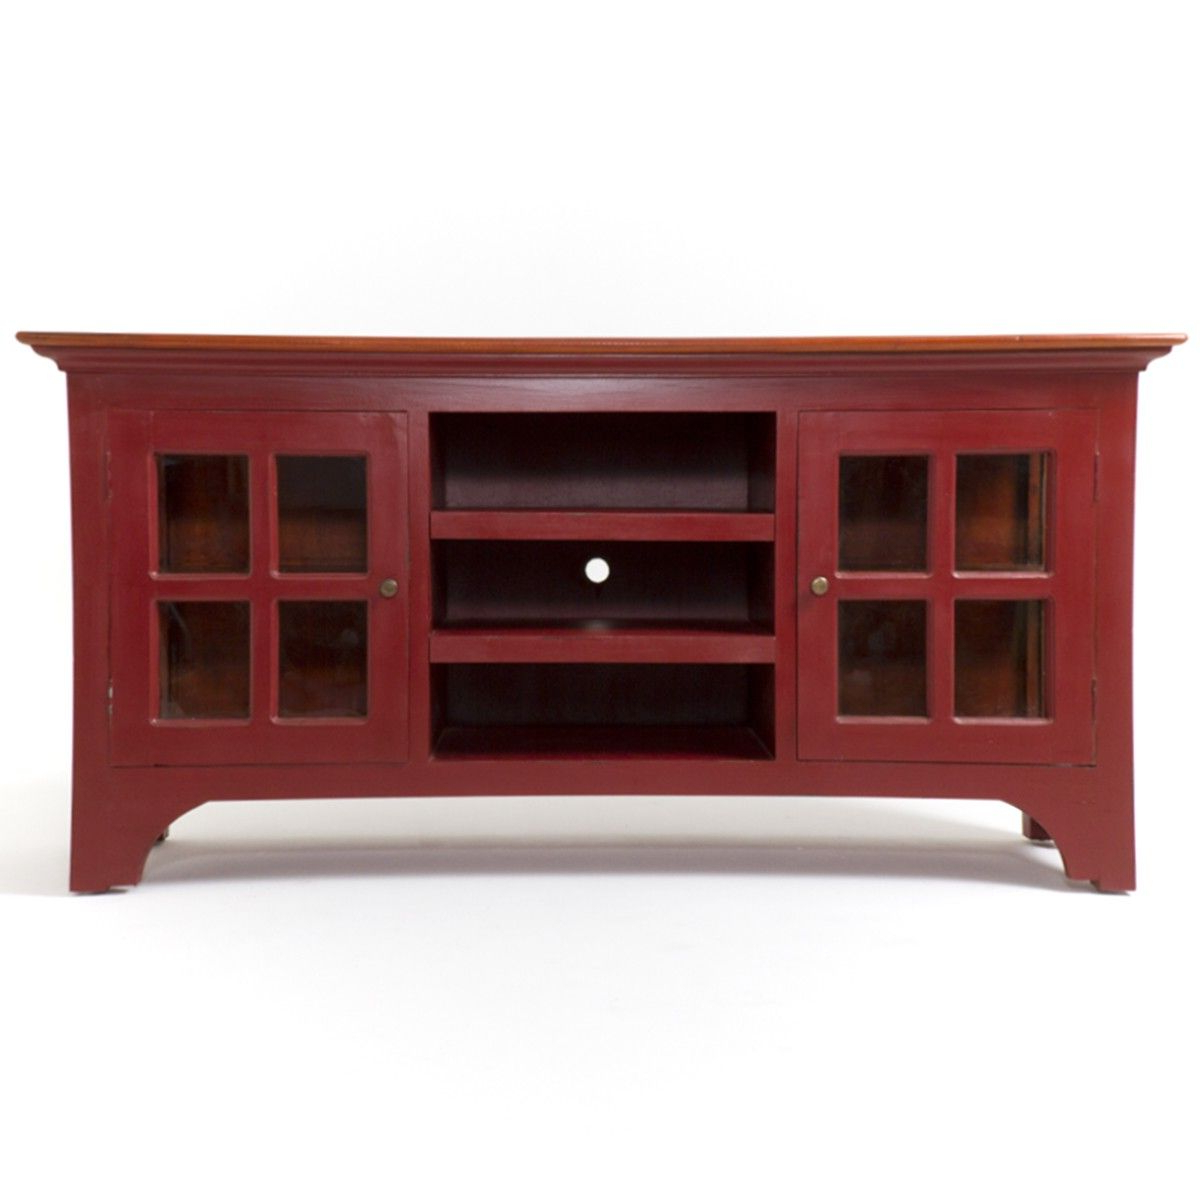 Trendy Red Tv Cabinets For Lunenburg Tv Stand – Media Stands – Cabinets – Cabinets & Shelving (View 11 of 20)